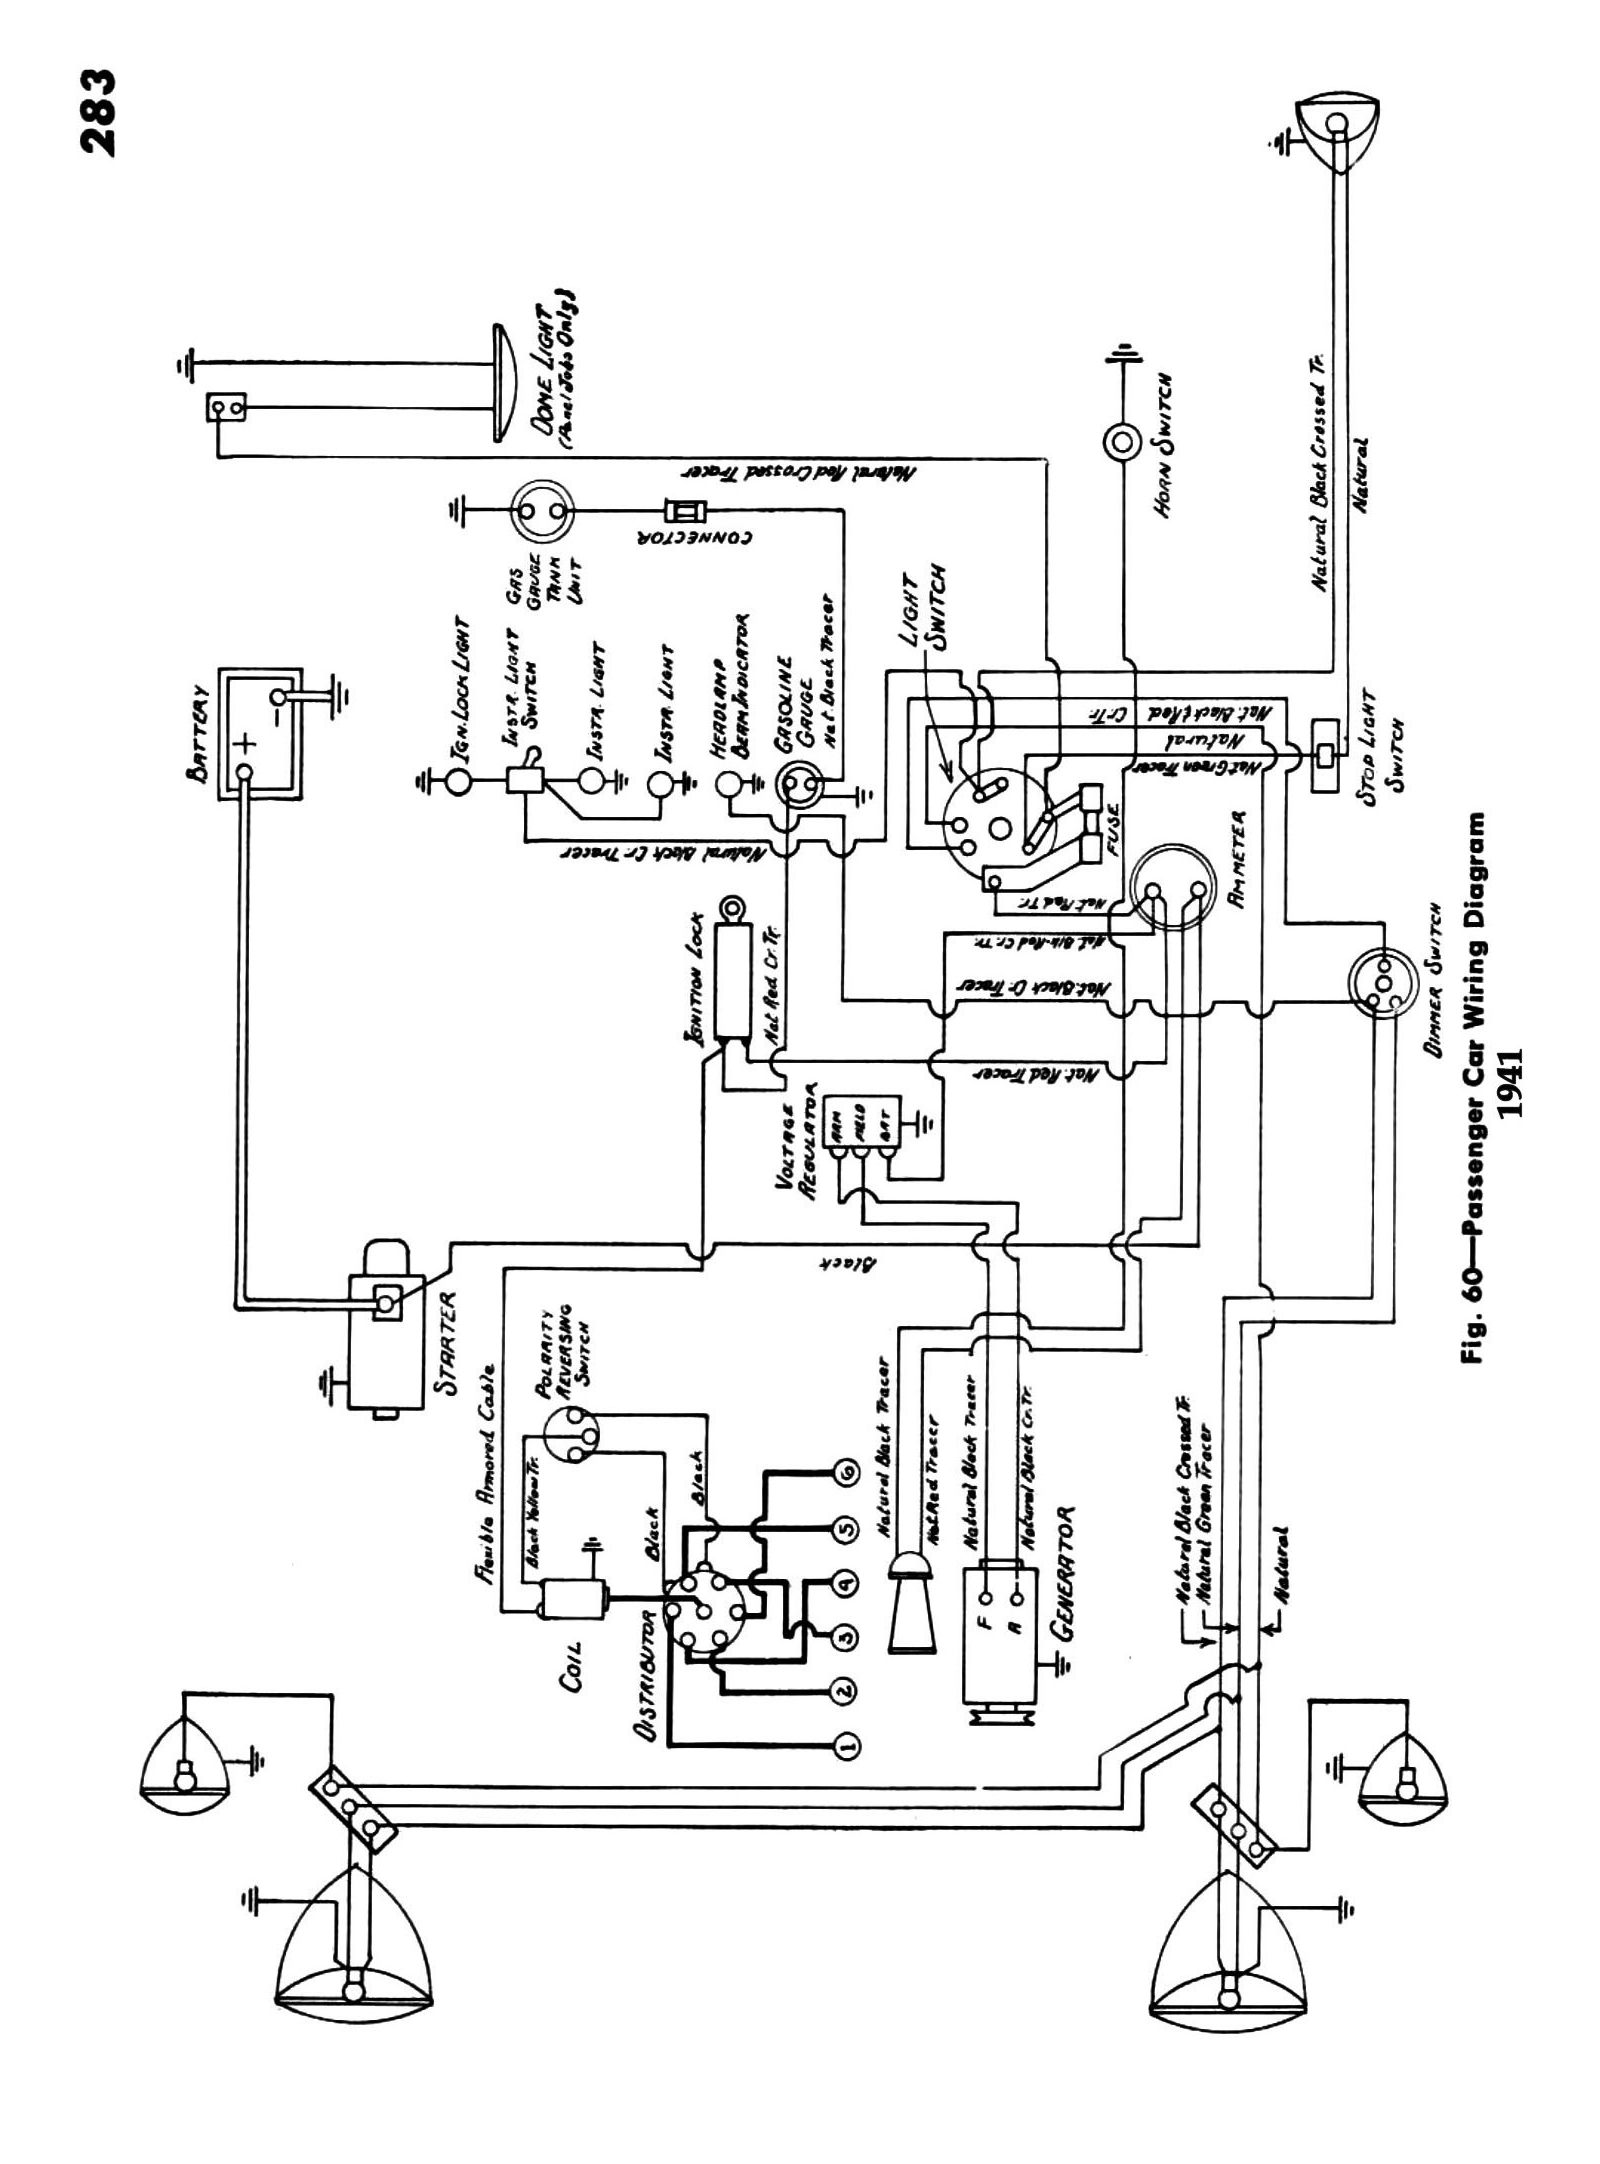 41csm283 chevy wiring diagrams  at gsmportal.co